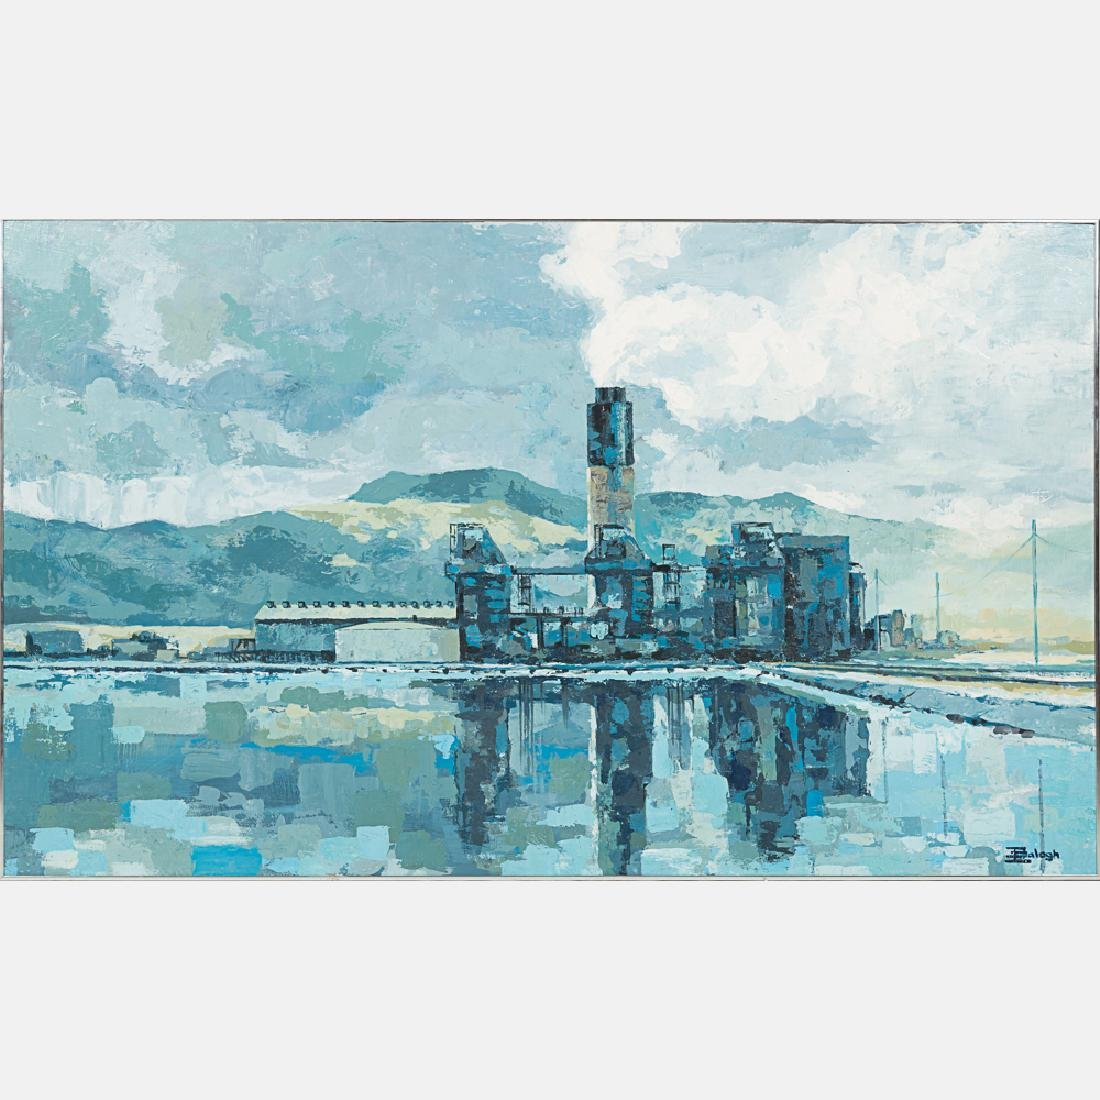 E. Balogh (20th Century) Industrial Landscape, Oil on